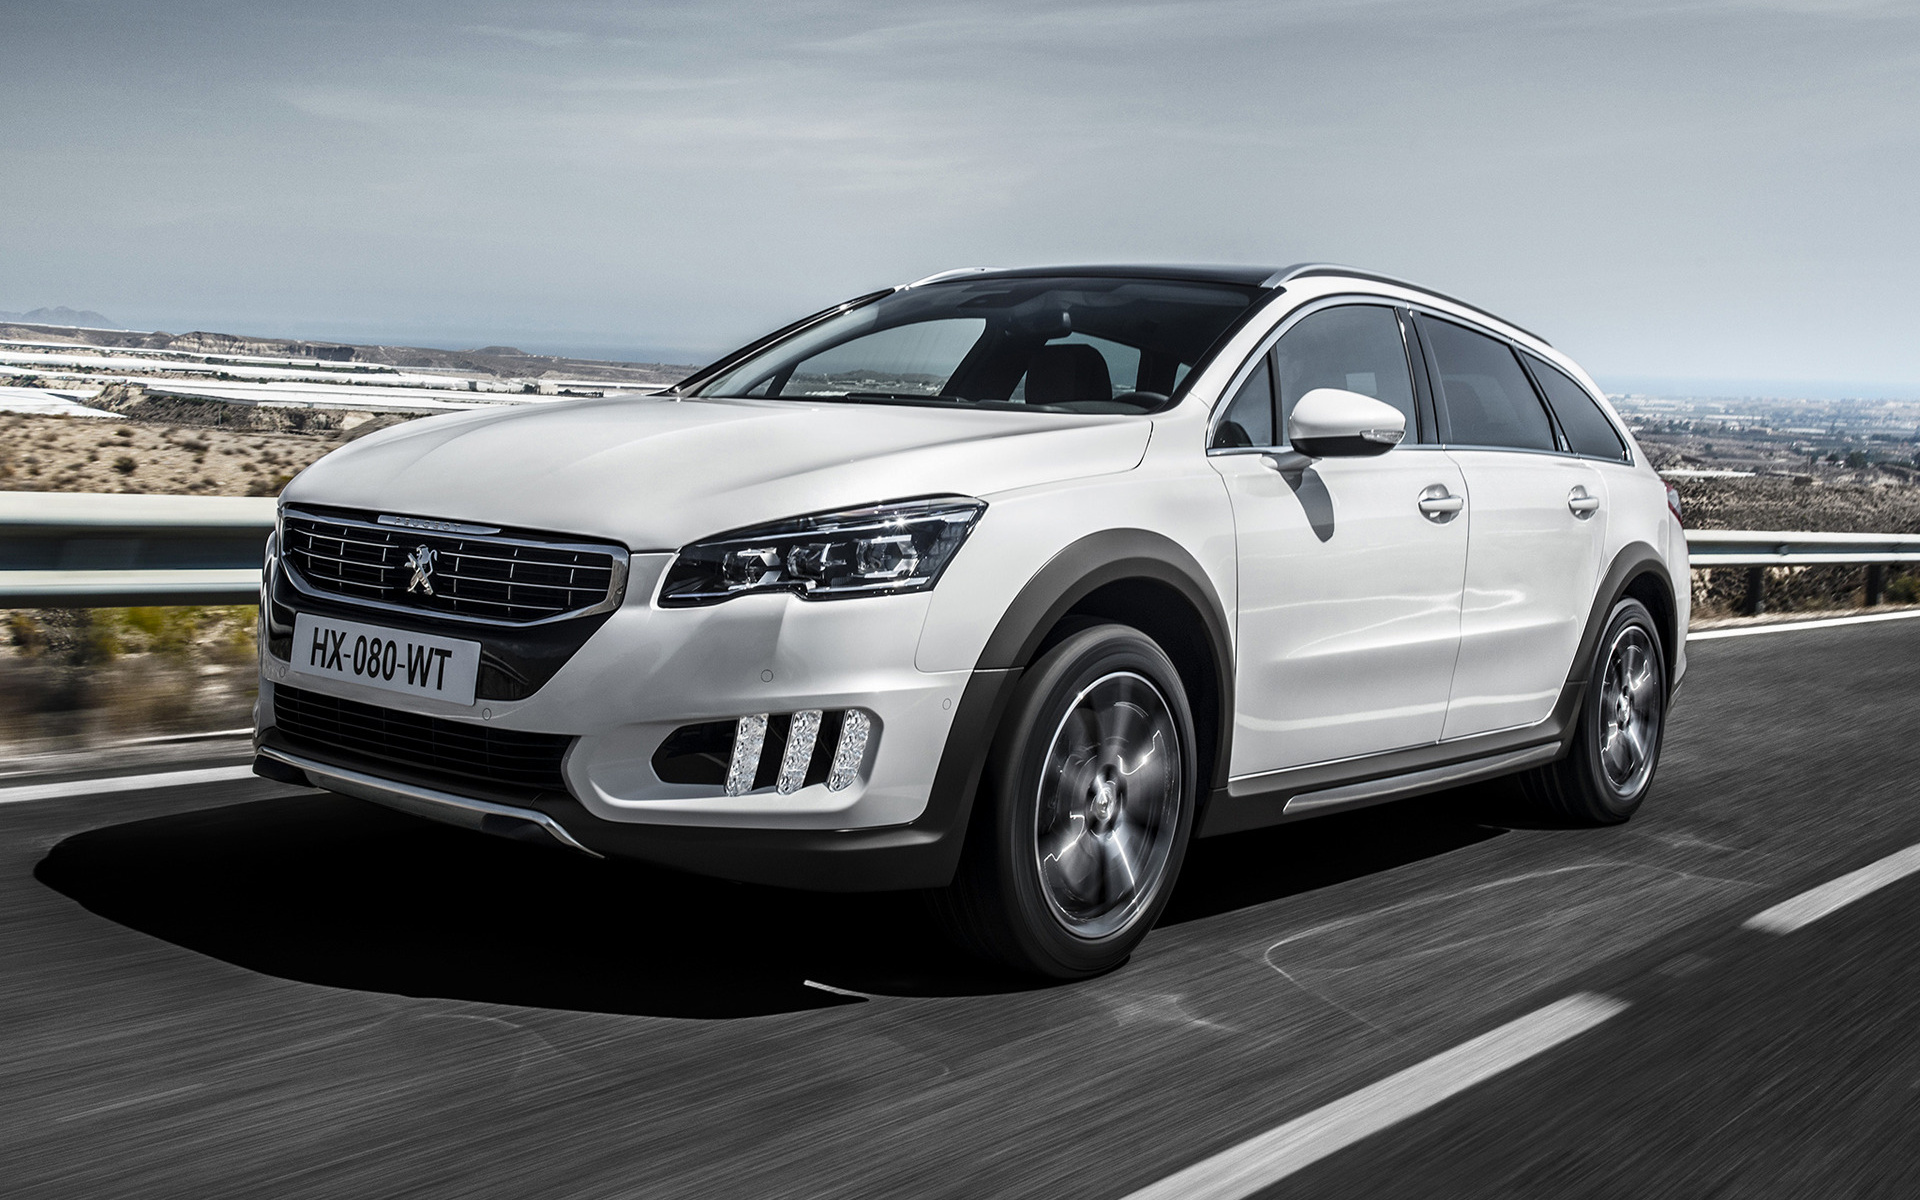 peugeot 508 rxh 2014 wallpapers and hd images car pixel. Black Bedroom Furniture Sets. Home Design Ideas